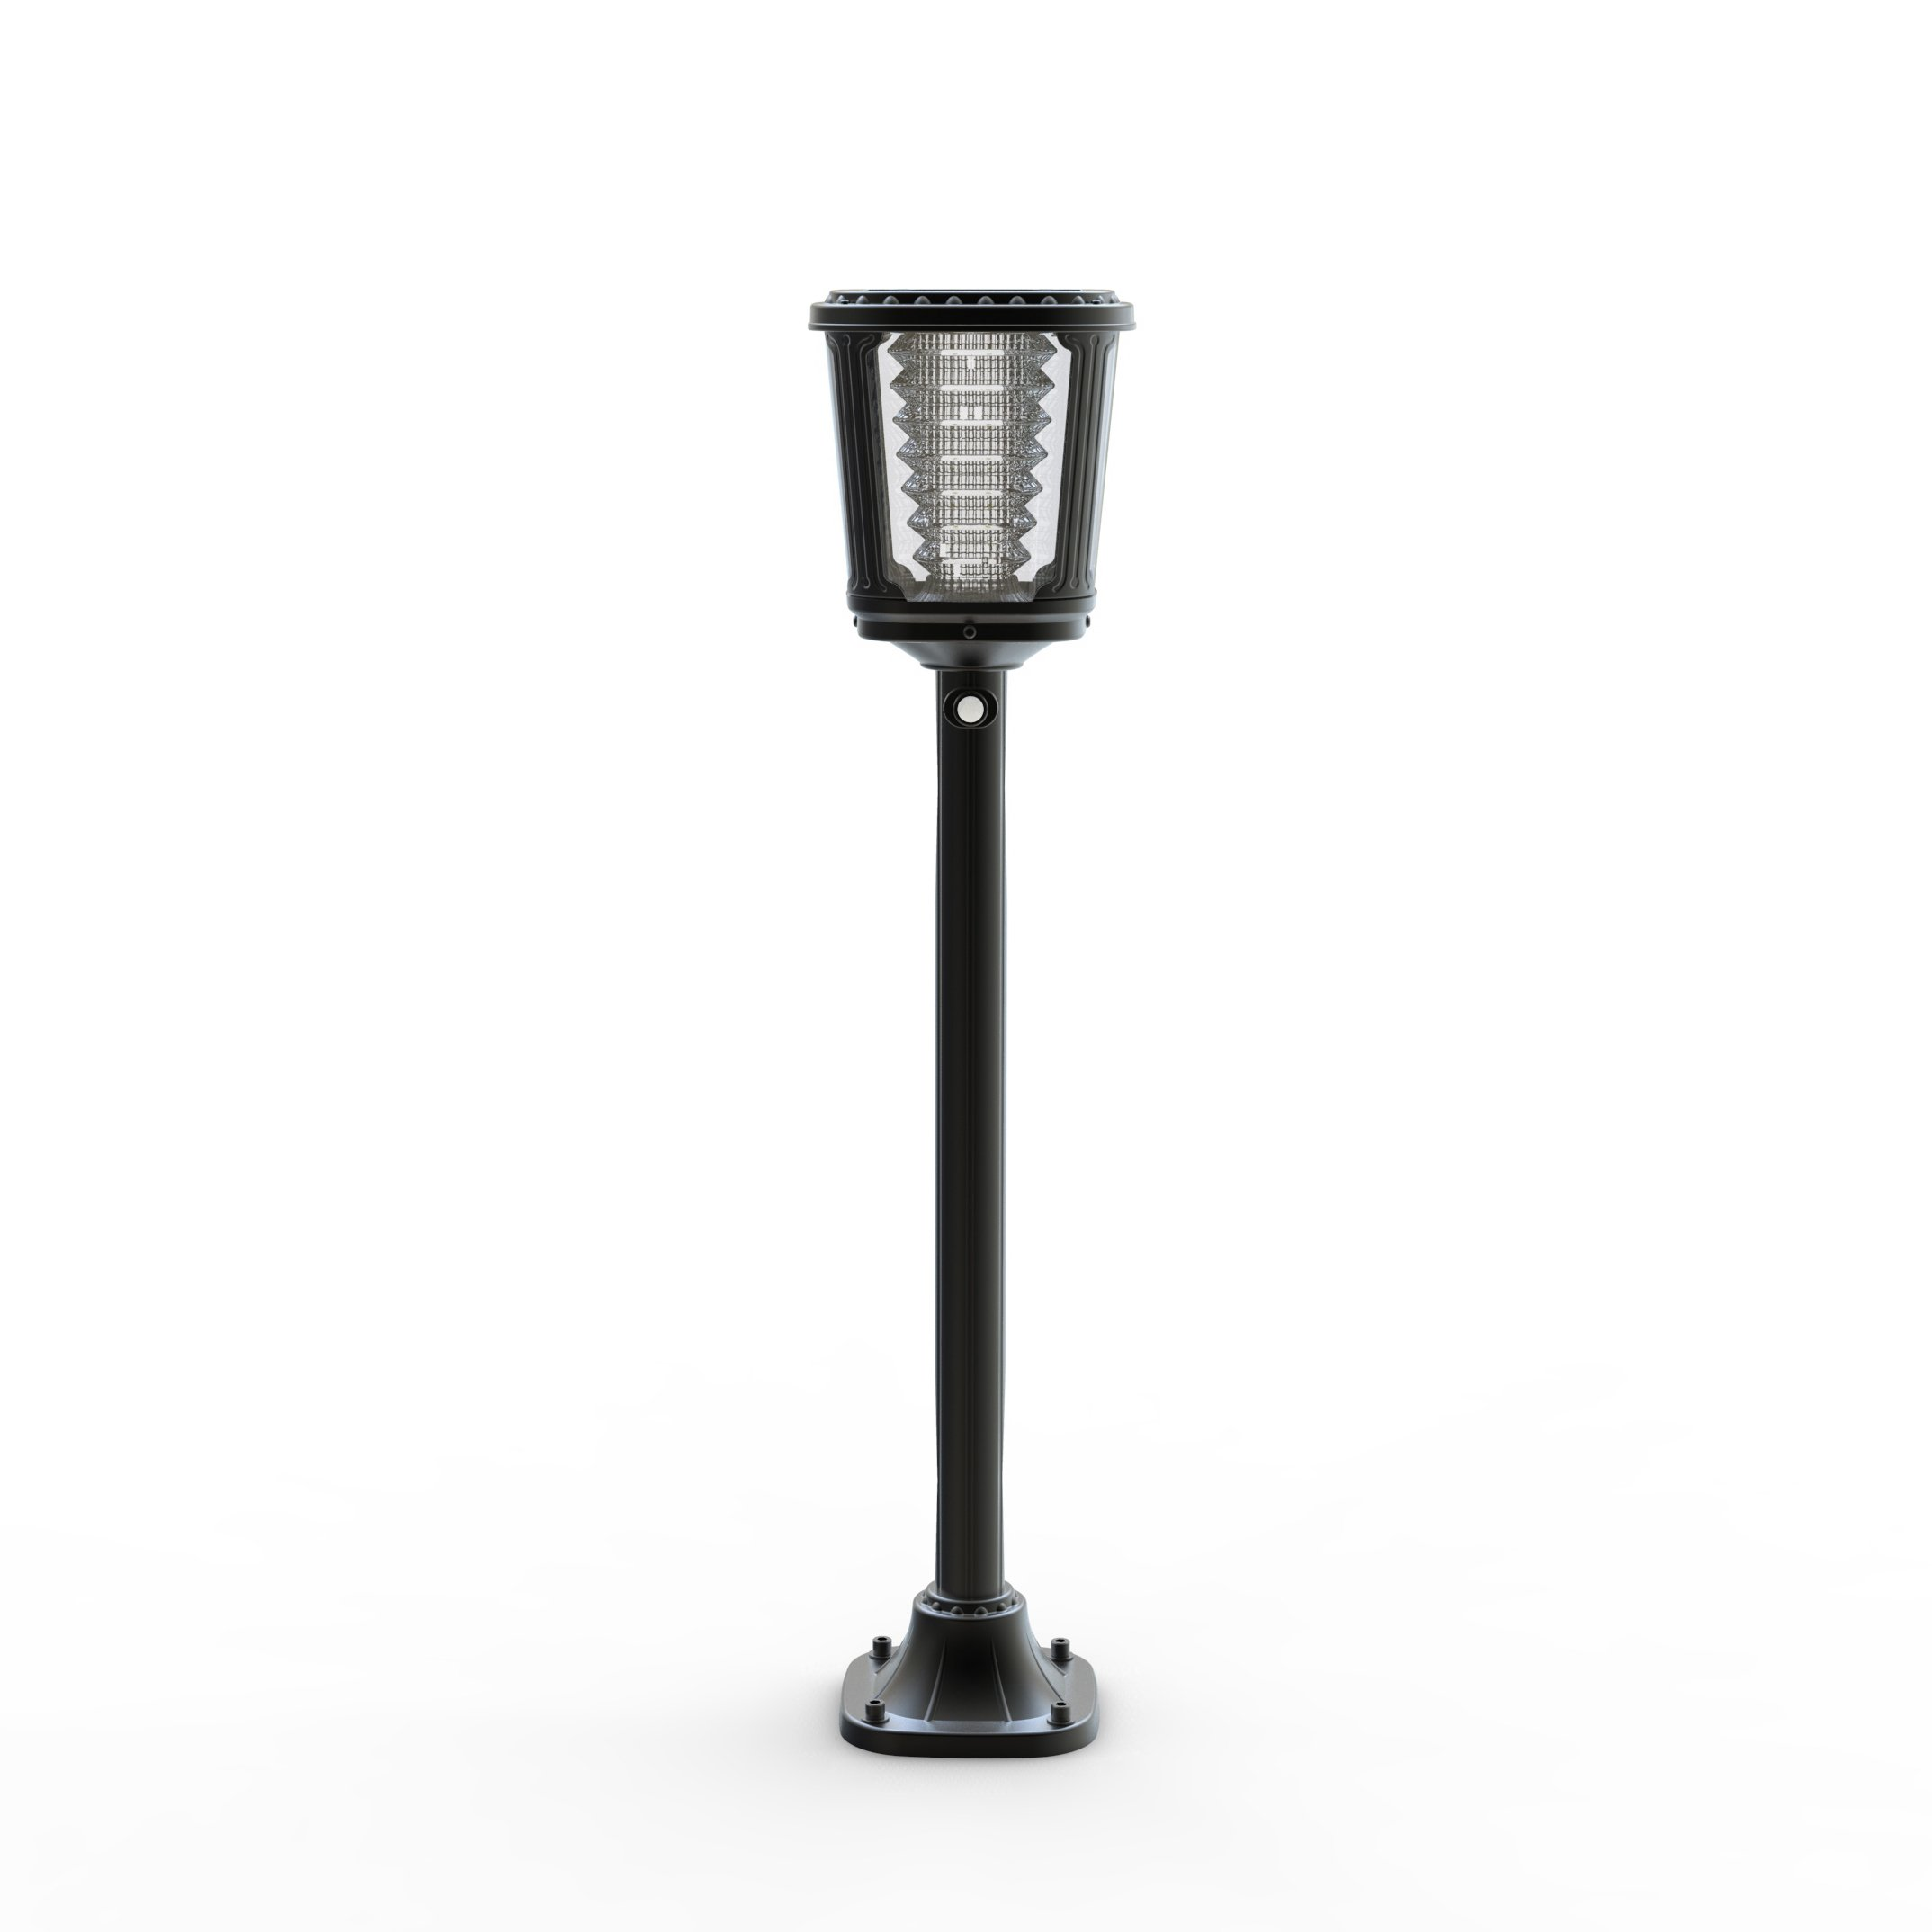 Asklan Solar Led Post Torch Light for Pathway Garden Walkway Driveway Entryway Yard – ALS 2.0 and TCS Technology–Ternary Lithium Ion Technology – Smart PIR Motion Detector – Aluminum Waterproof IP65